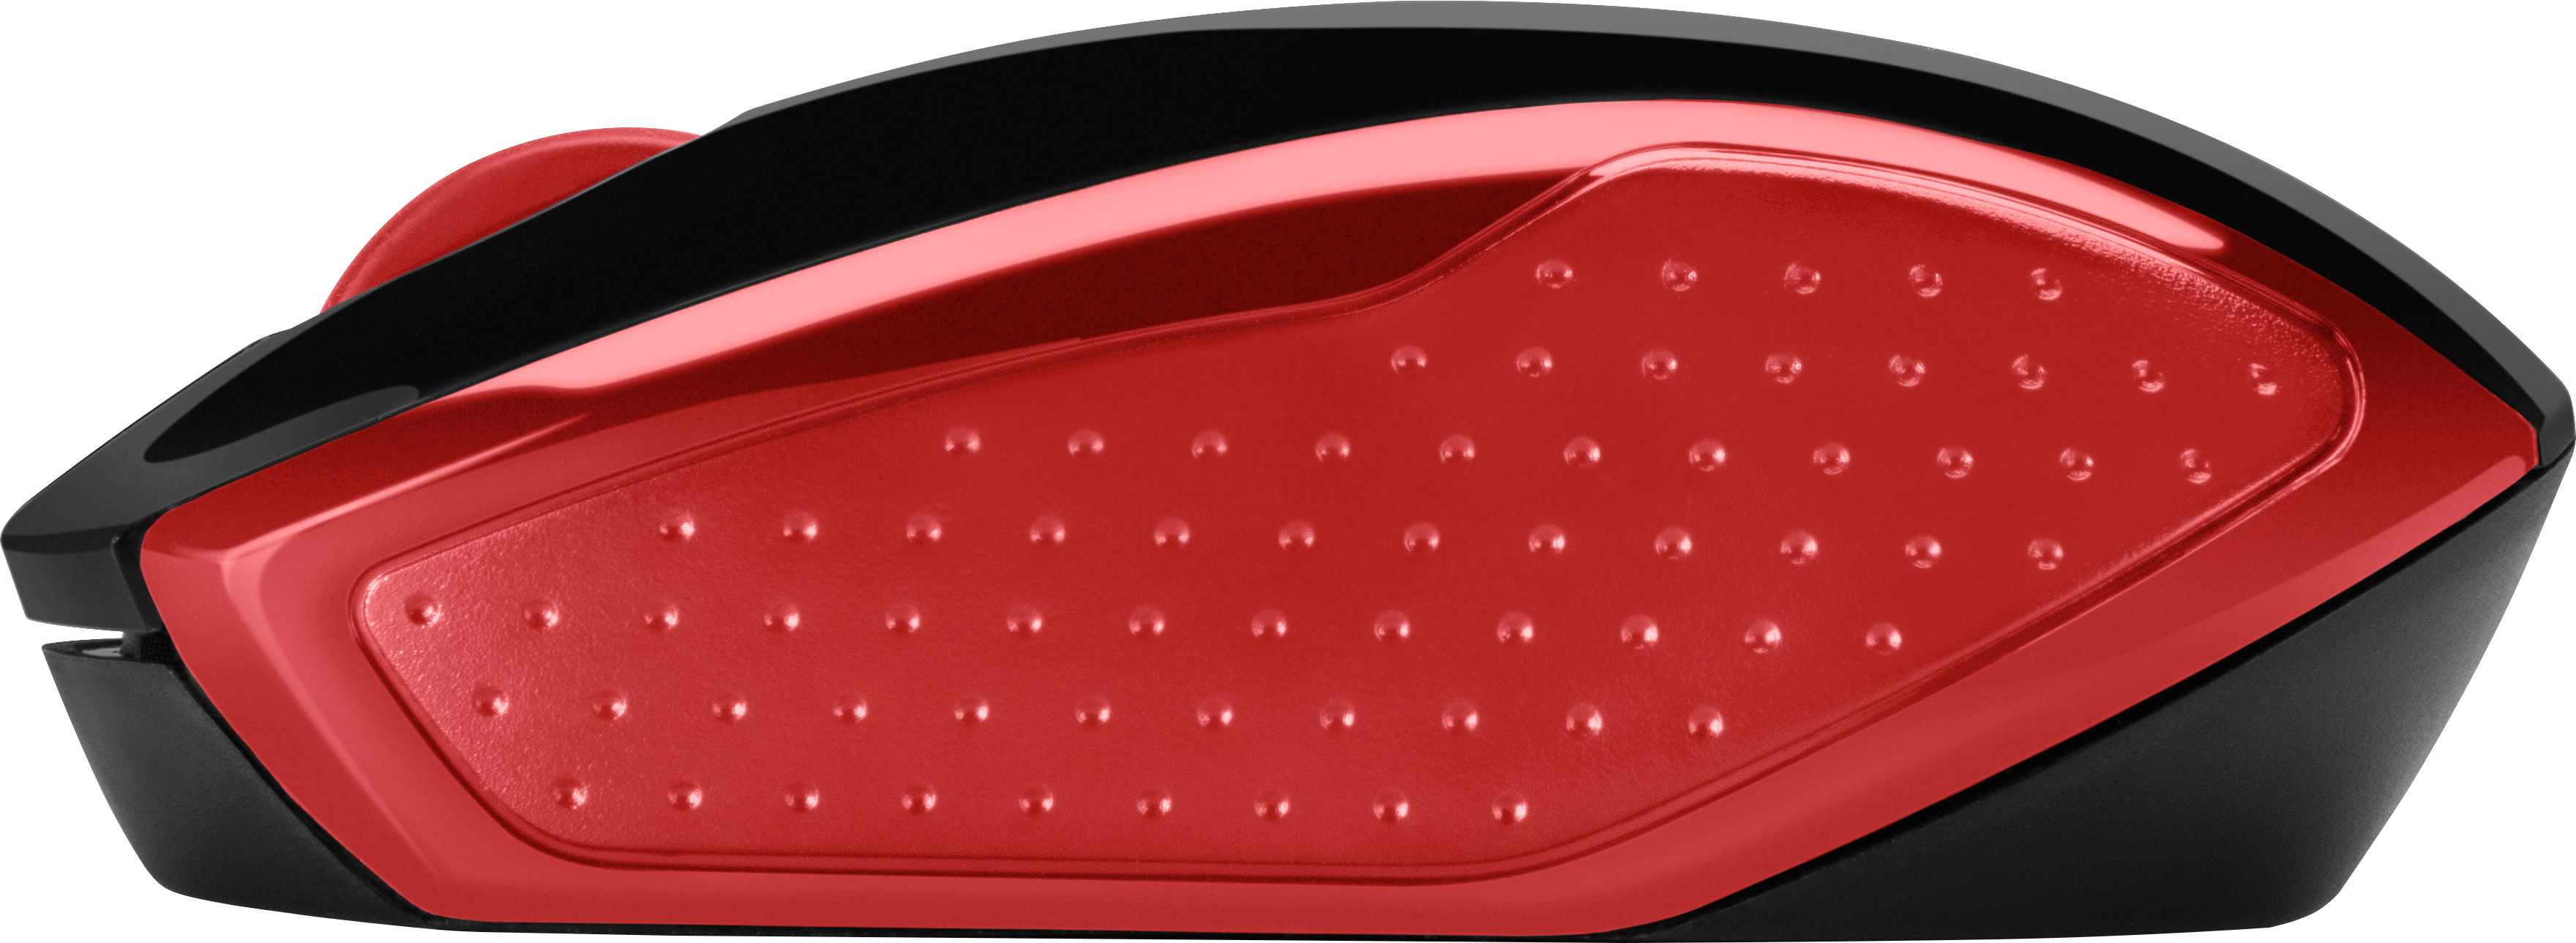 Empres 200 Wireless Mouse (rood)